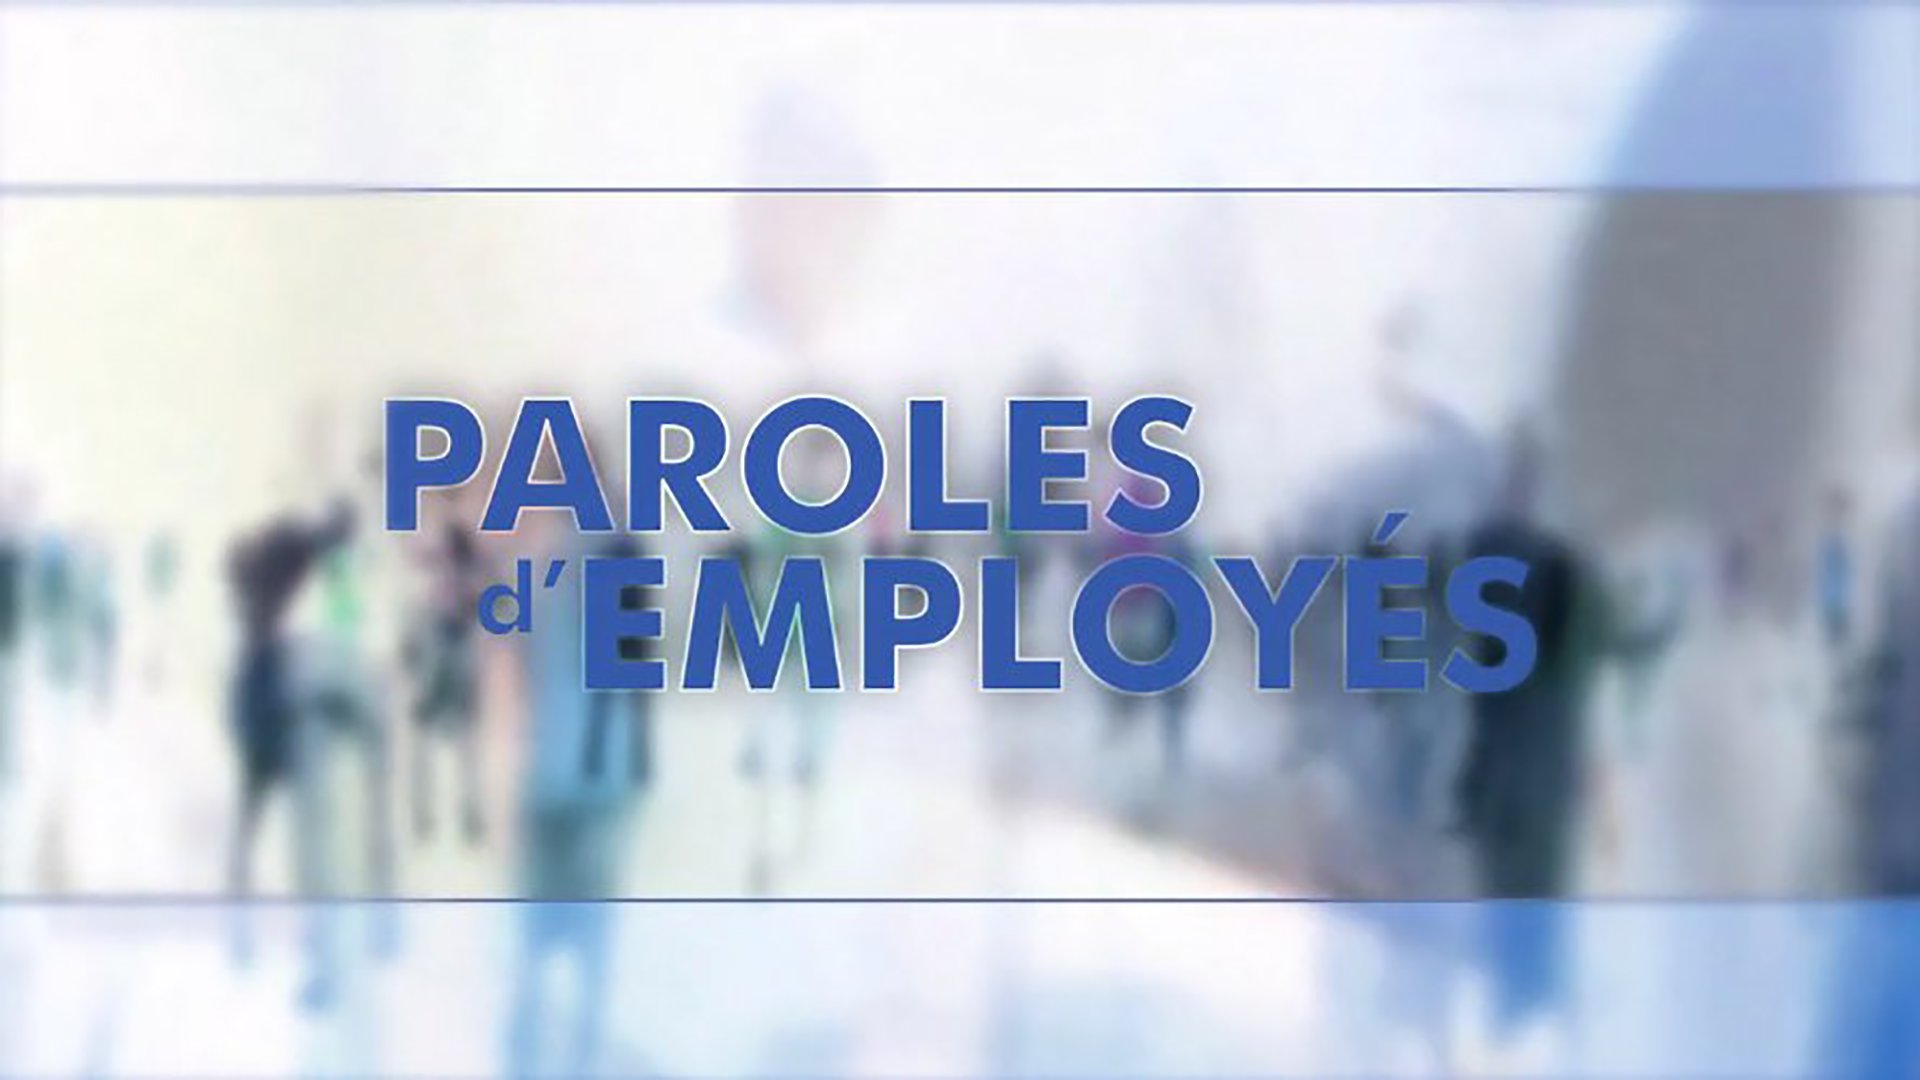 Paroles d'employés